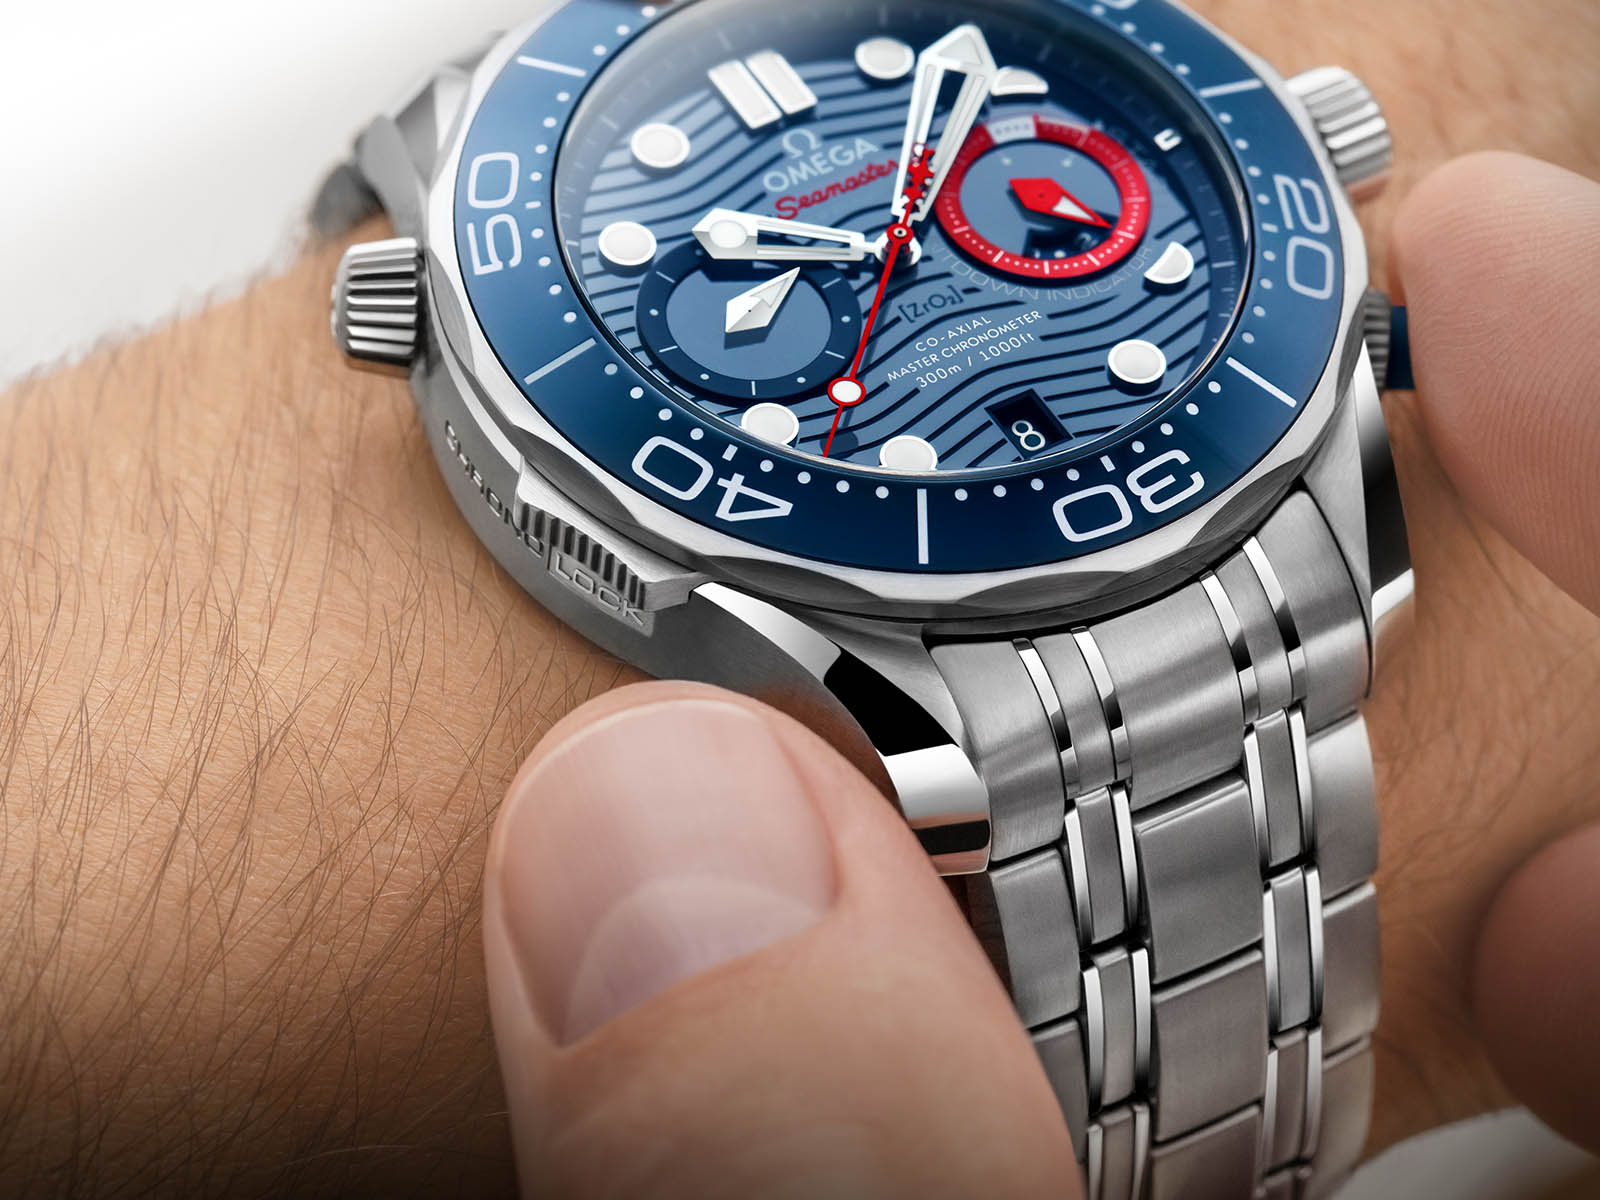 210-30-44-51-03-002-omega-seamaster-diver-300m-america-s-cup-chronograph-9.jpg